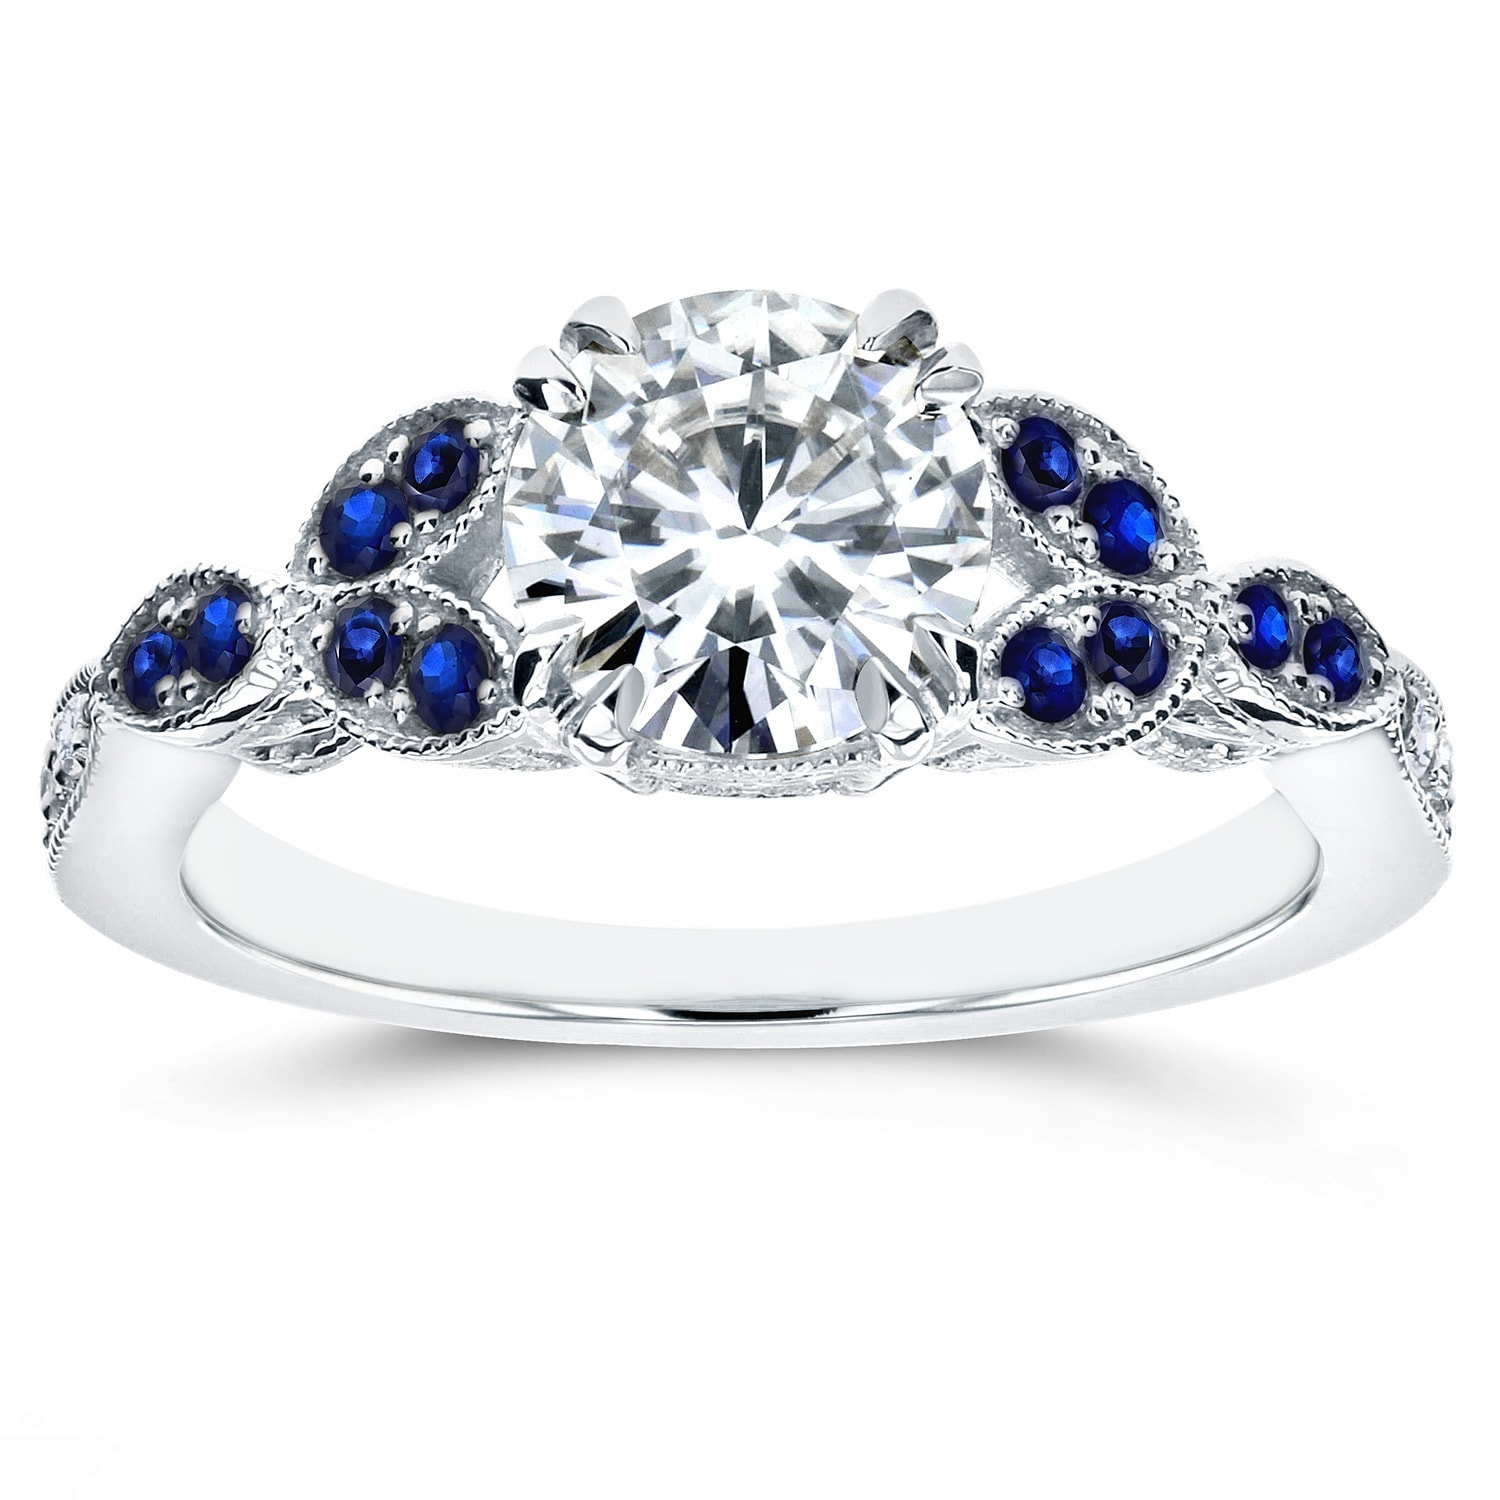 free sapphire ring and today jewelry floral white blue engagement annello overstock vintage accented shipping gold diamond moissanite watches kobelli tgw by product